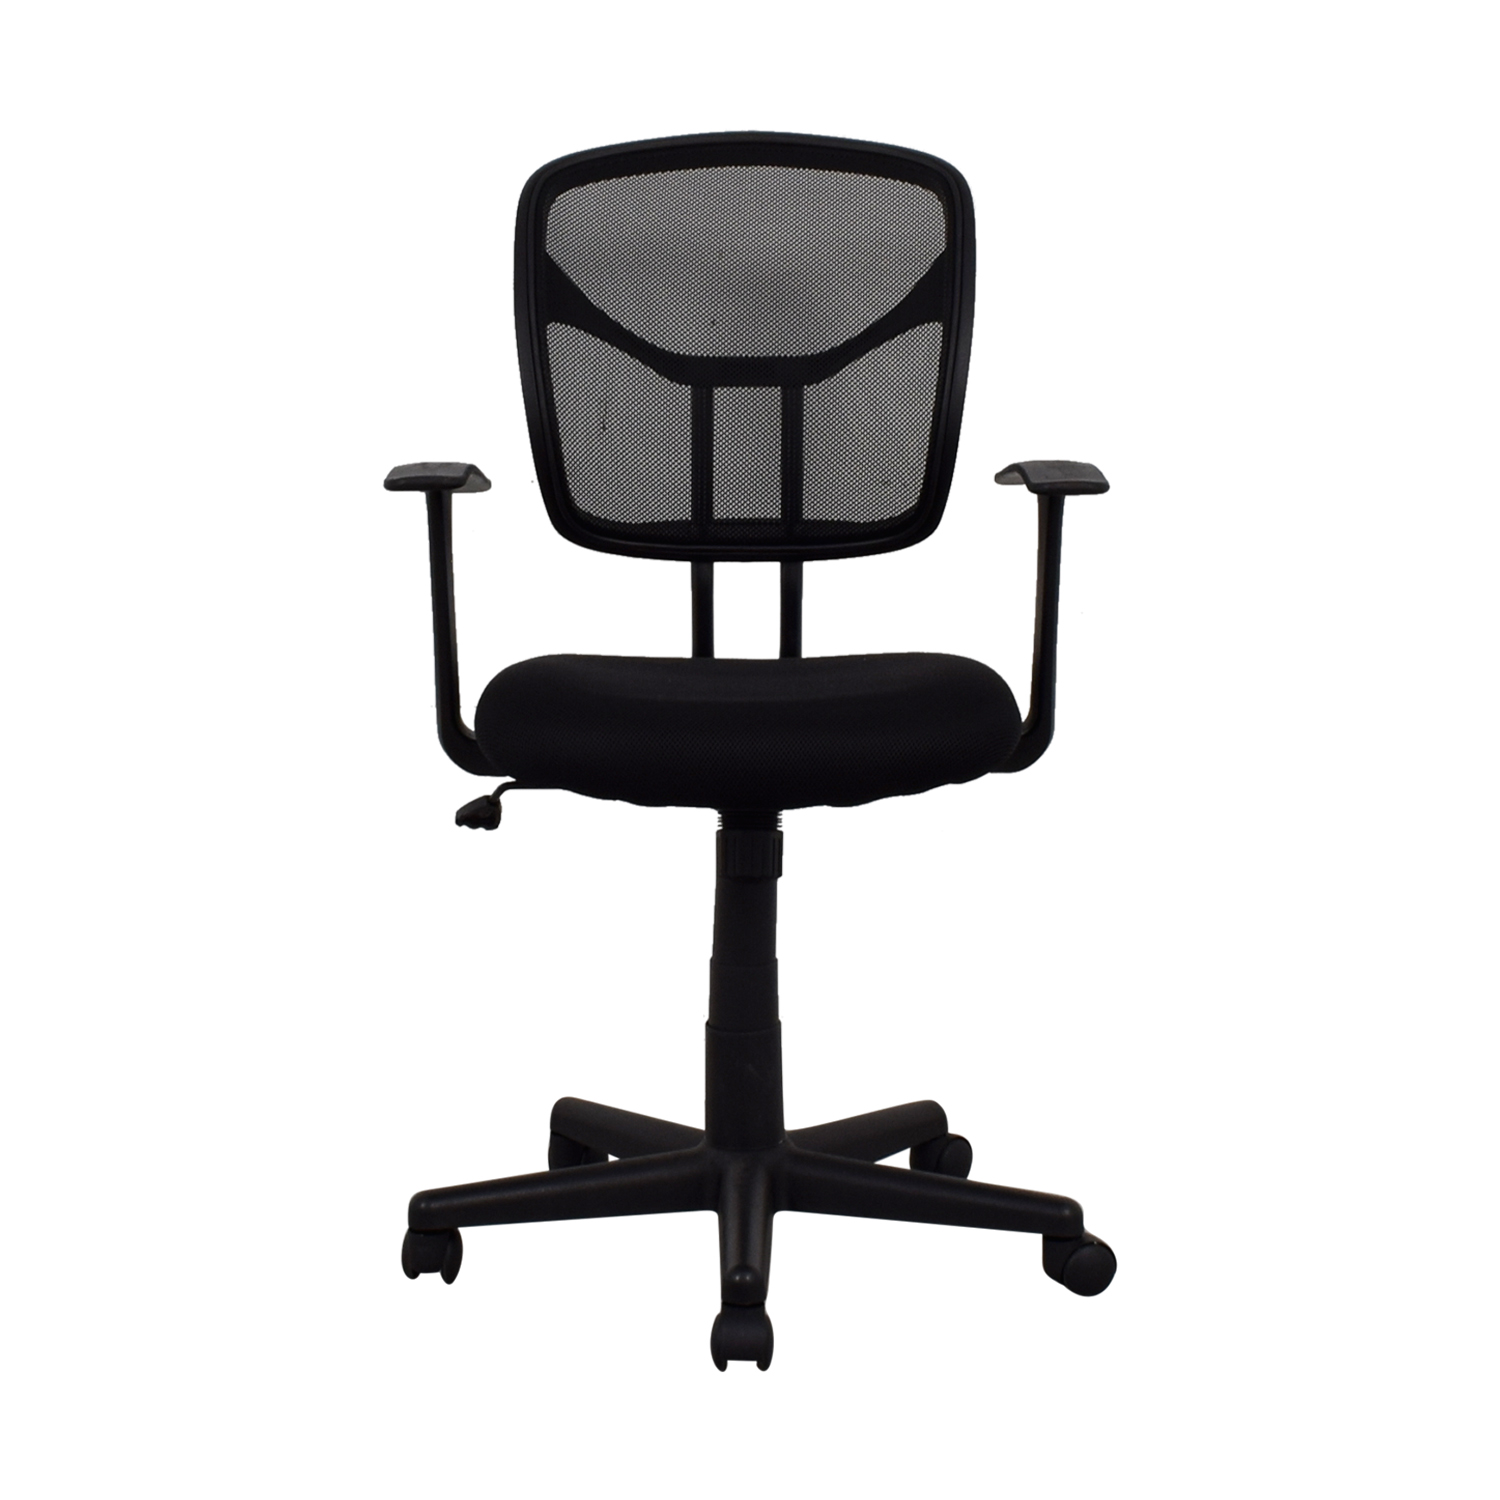 Black Rolling Office Chair dimensions